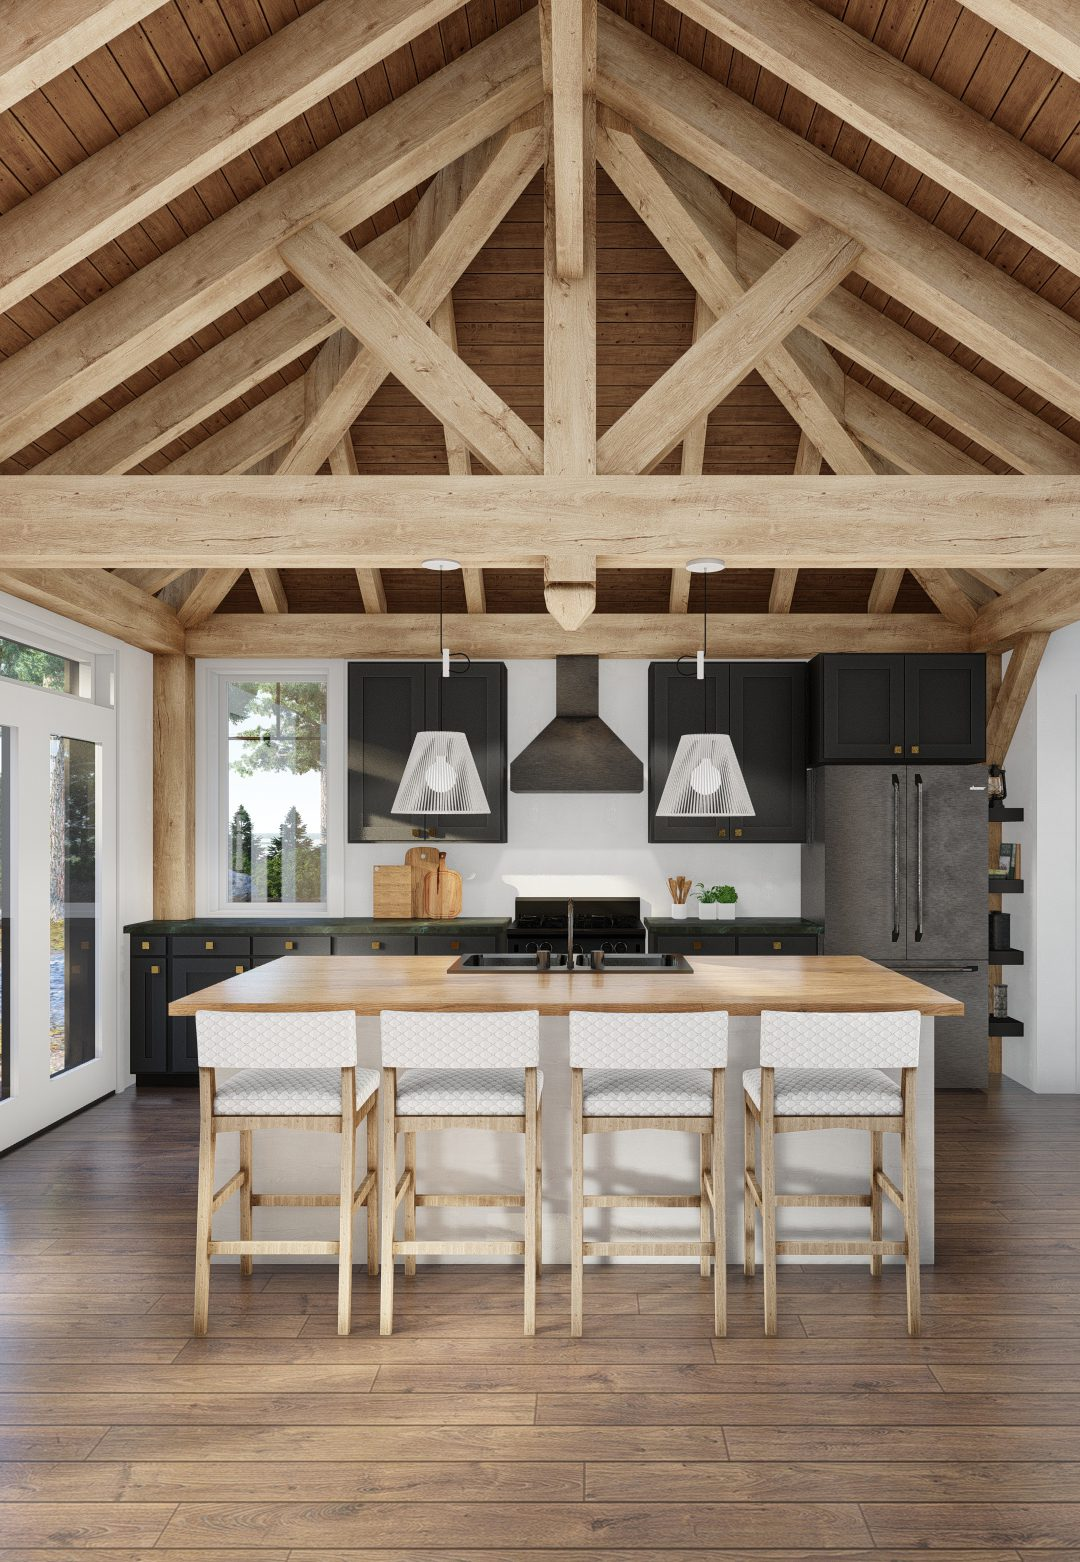 Normerica Timber Homes, Timber Frame, House Plans, The Herridge 3979, Interior, Dining Room, Kitchen, Cathedral Ceiling